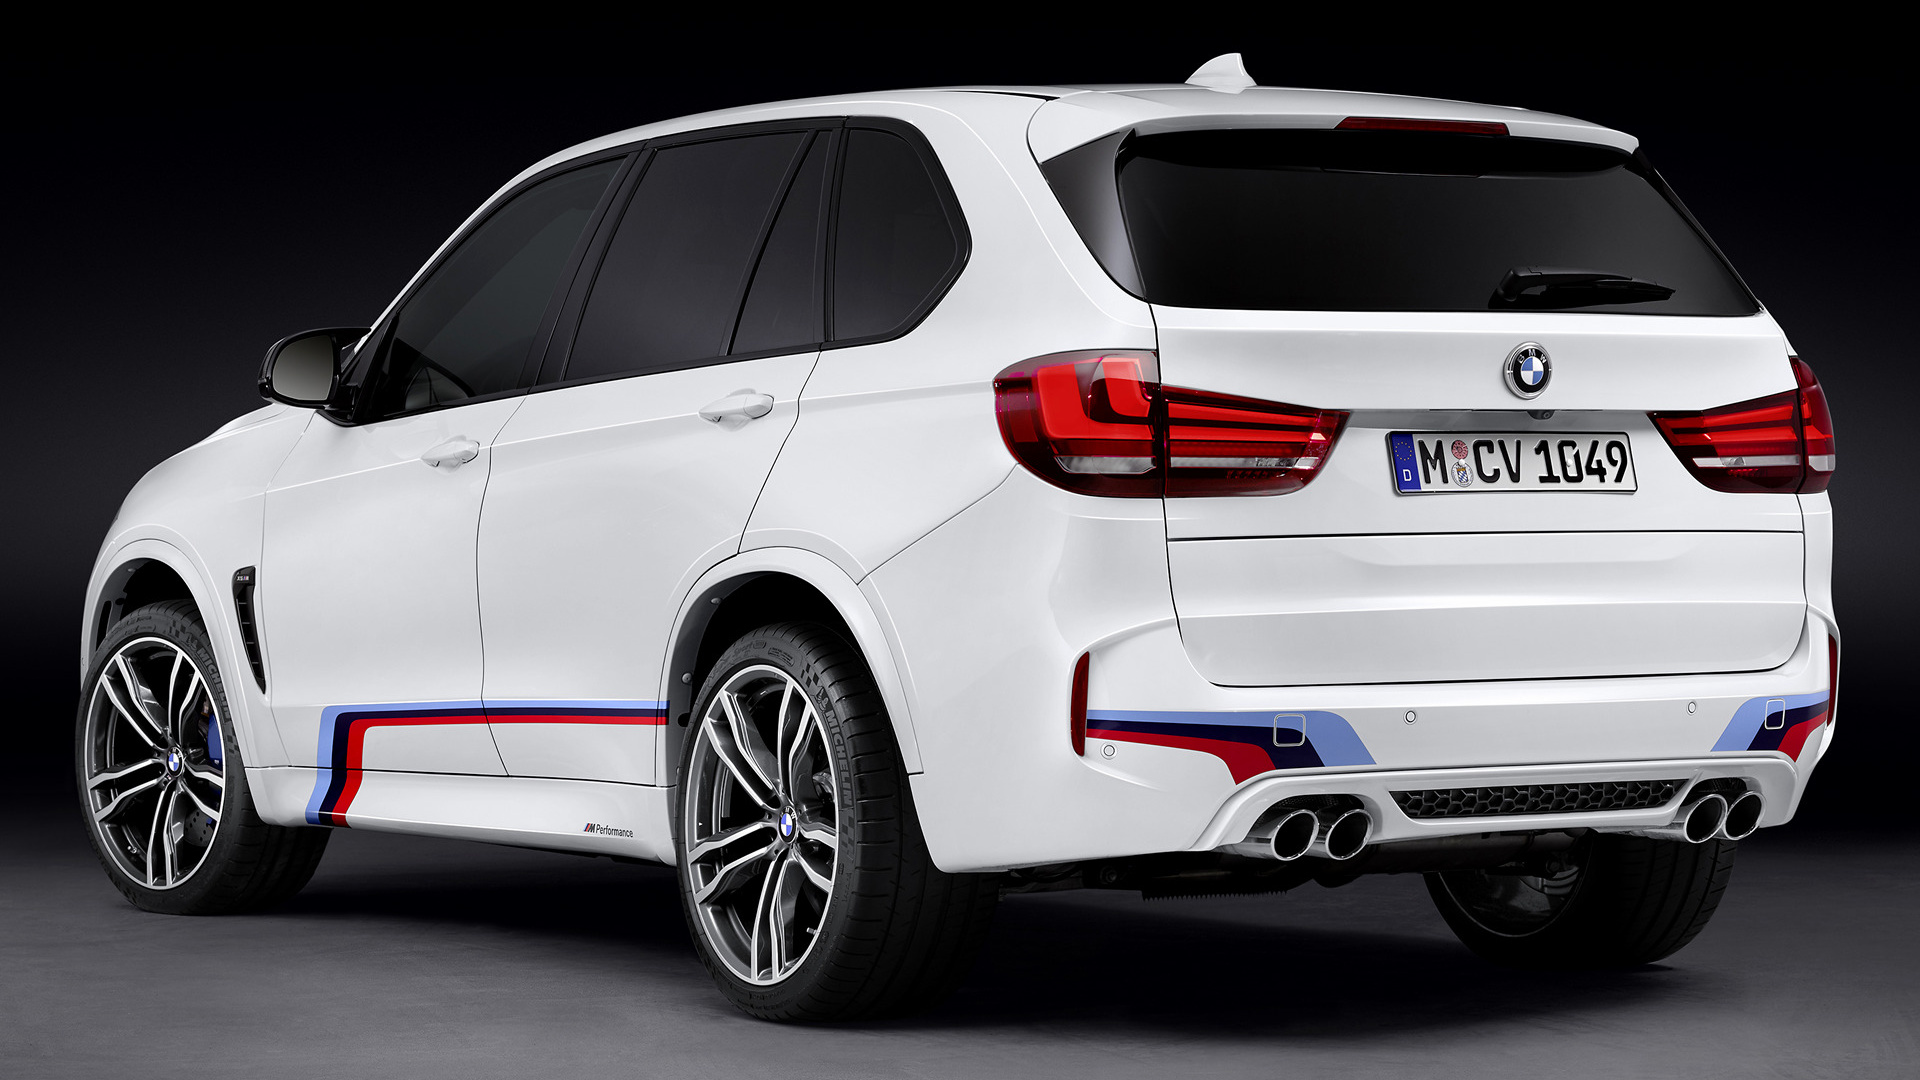 2015 Bmw X5 M With M Performance Parts Wallpapers And Hd